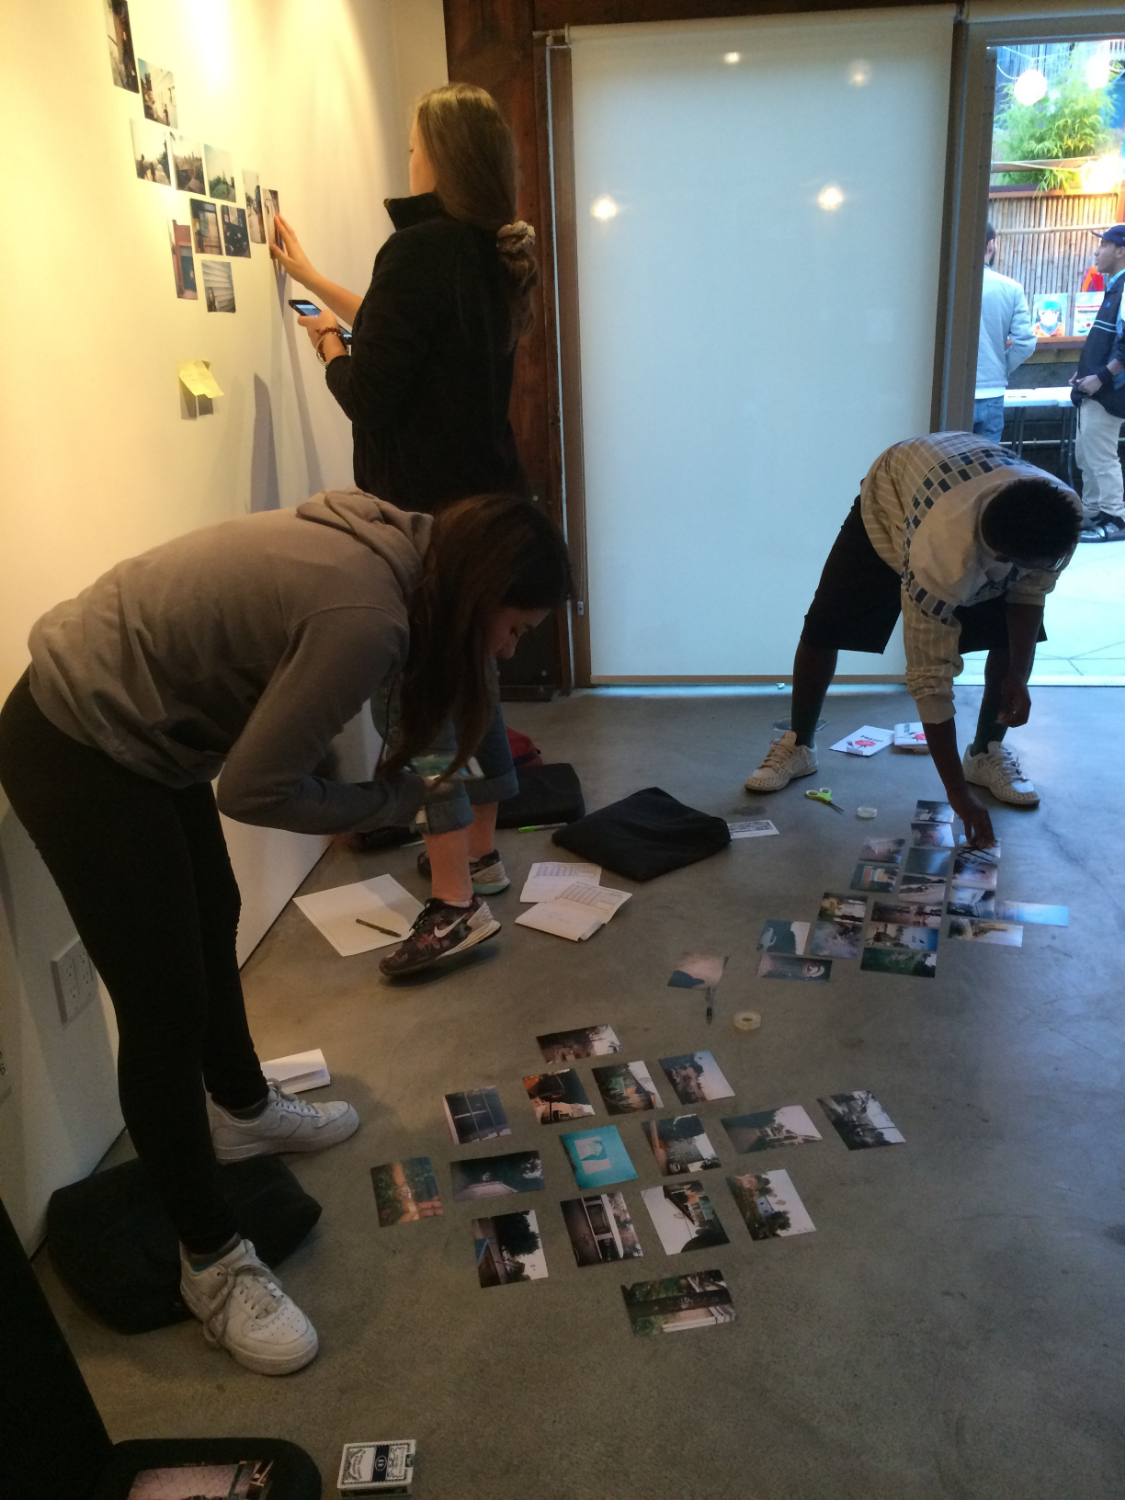 Sorting through the prints from their disposable camera photo project!